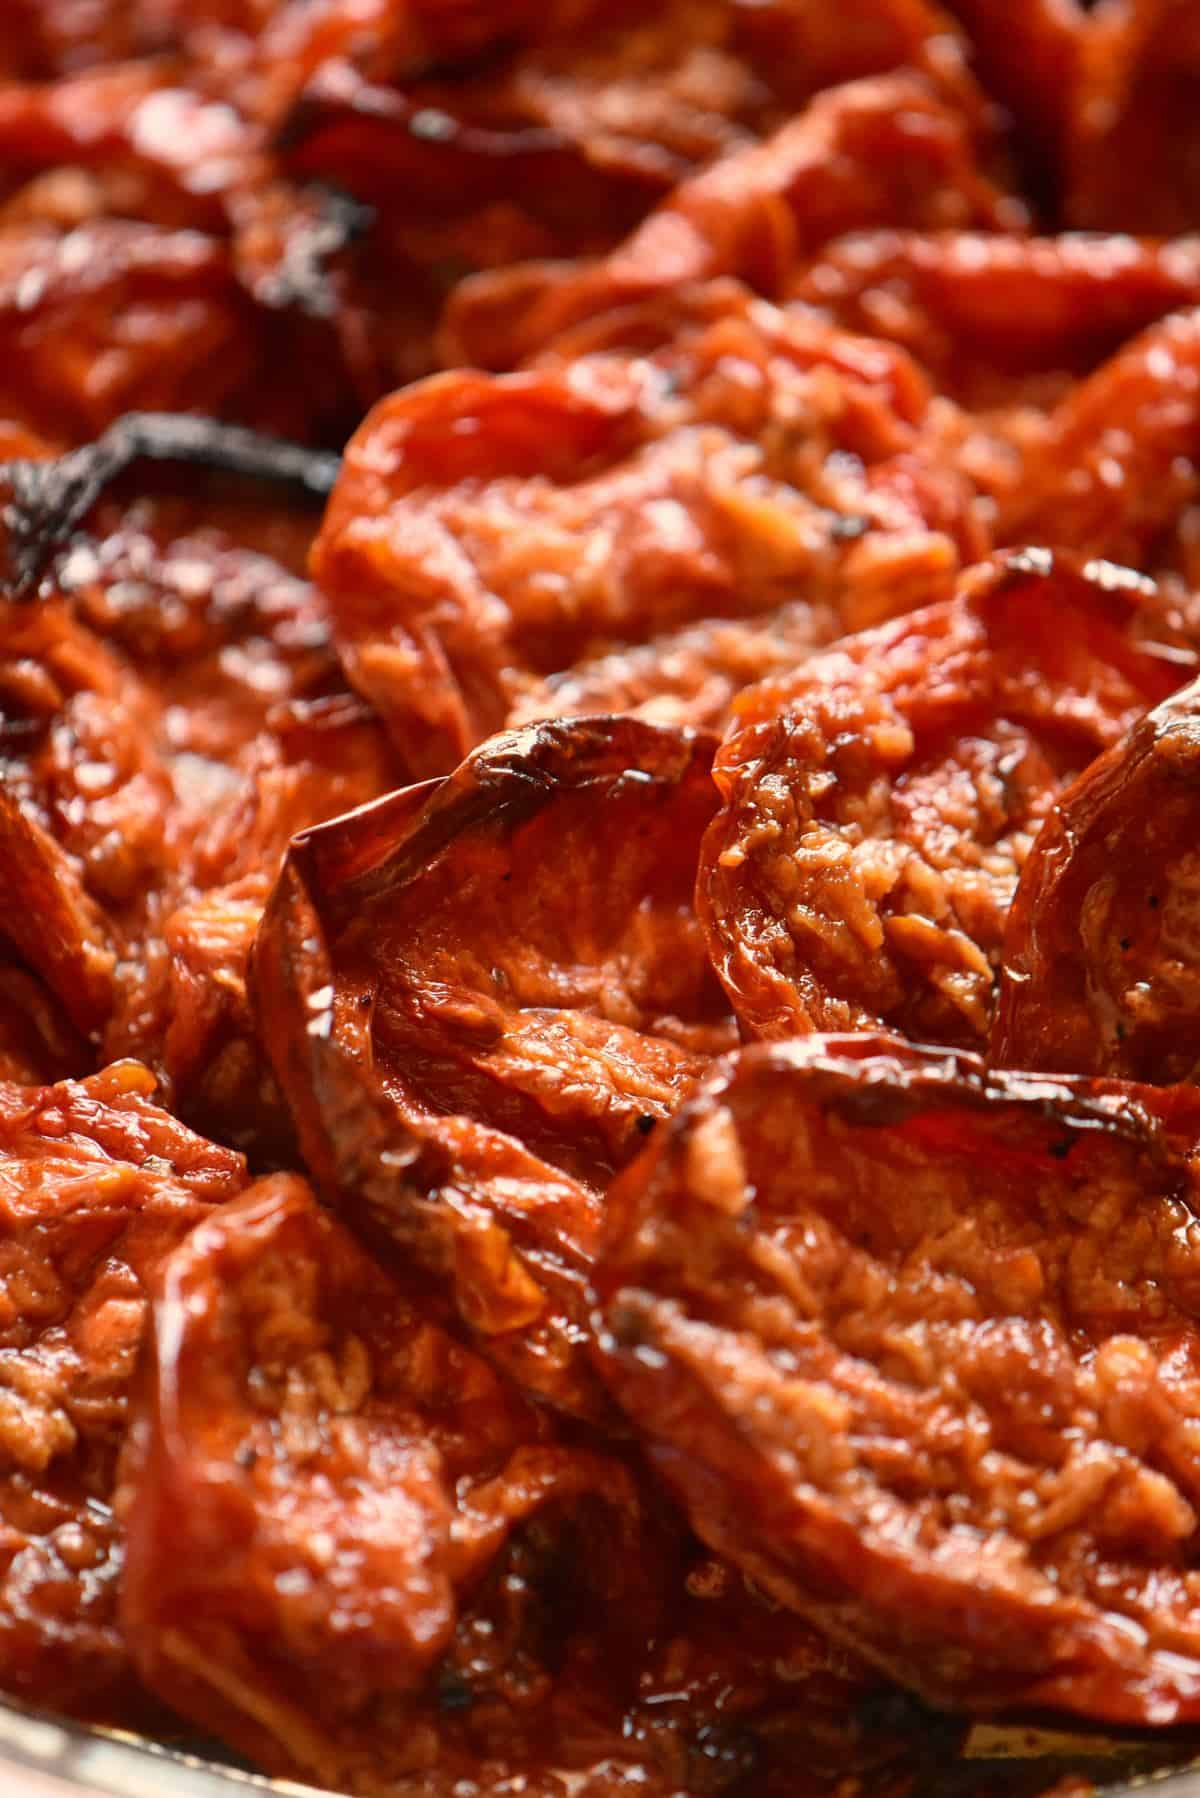 Oven roasted tomatoes on a plate.